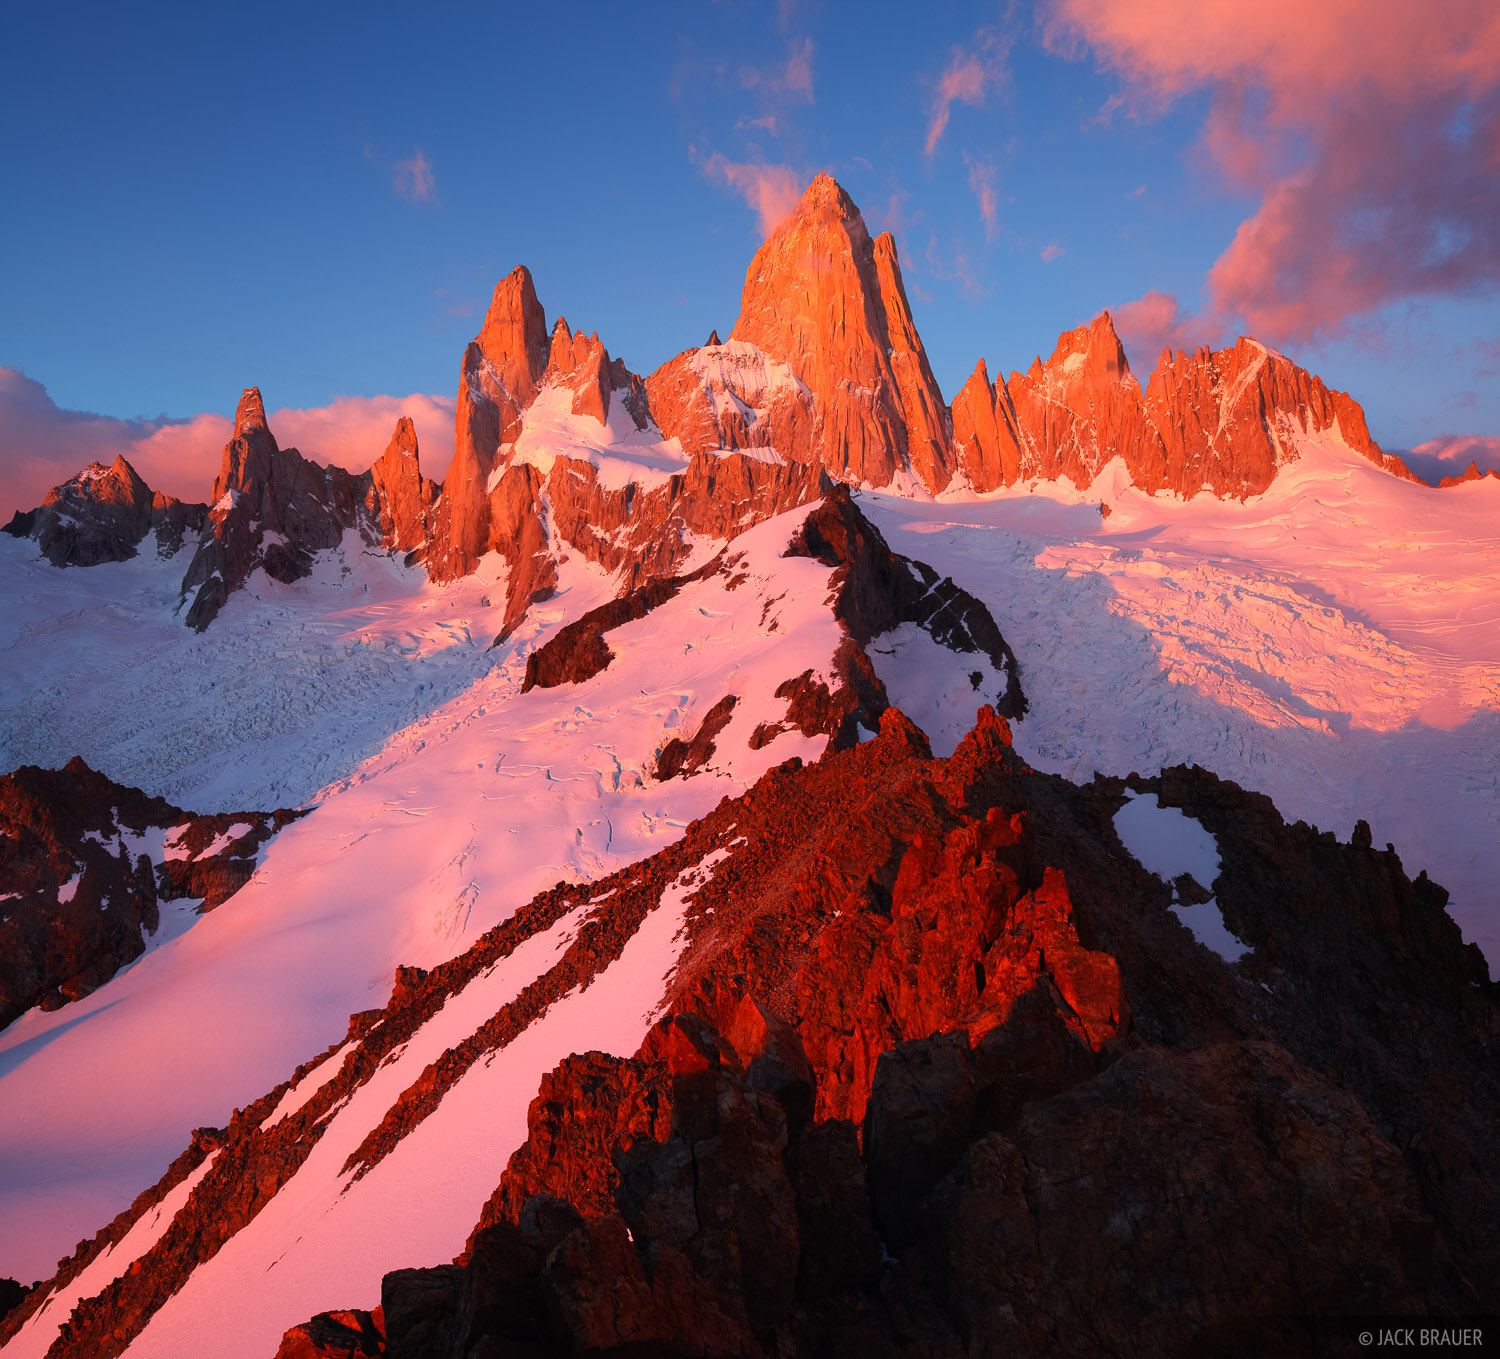 Fitz Roy, El Chaltén, Argentina, Patagonia, sunrise, December, South America, alpenglow, photo